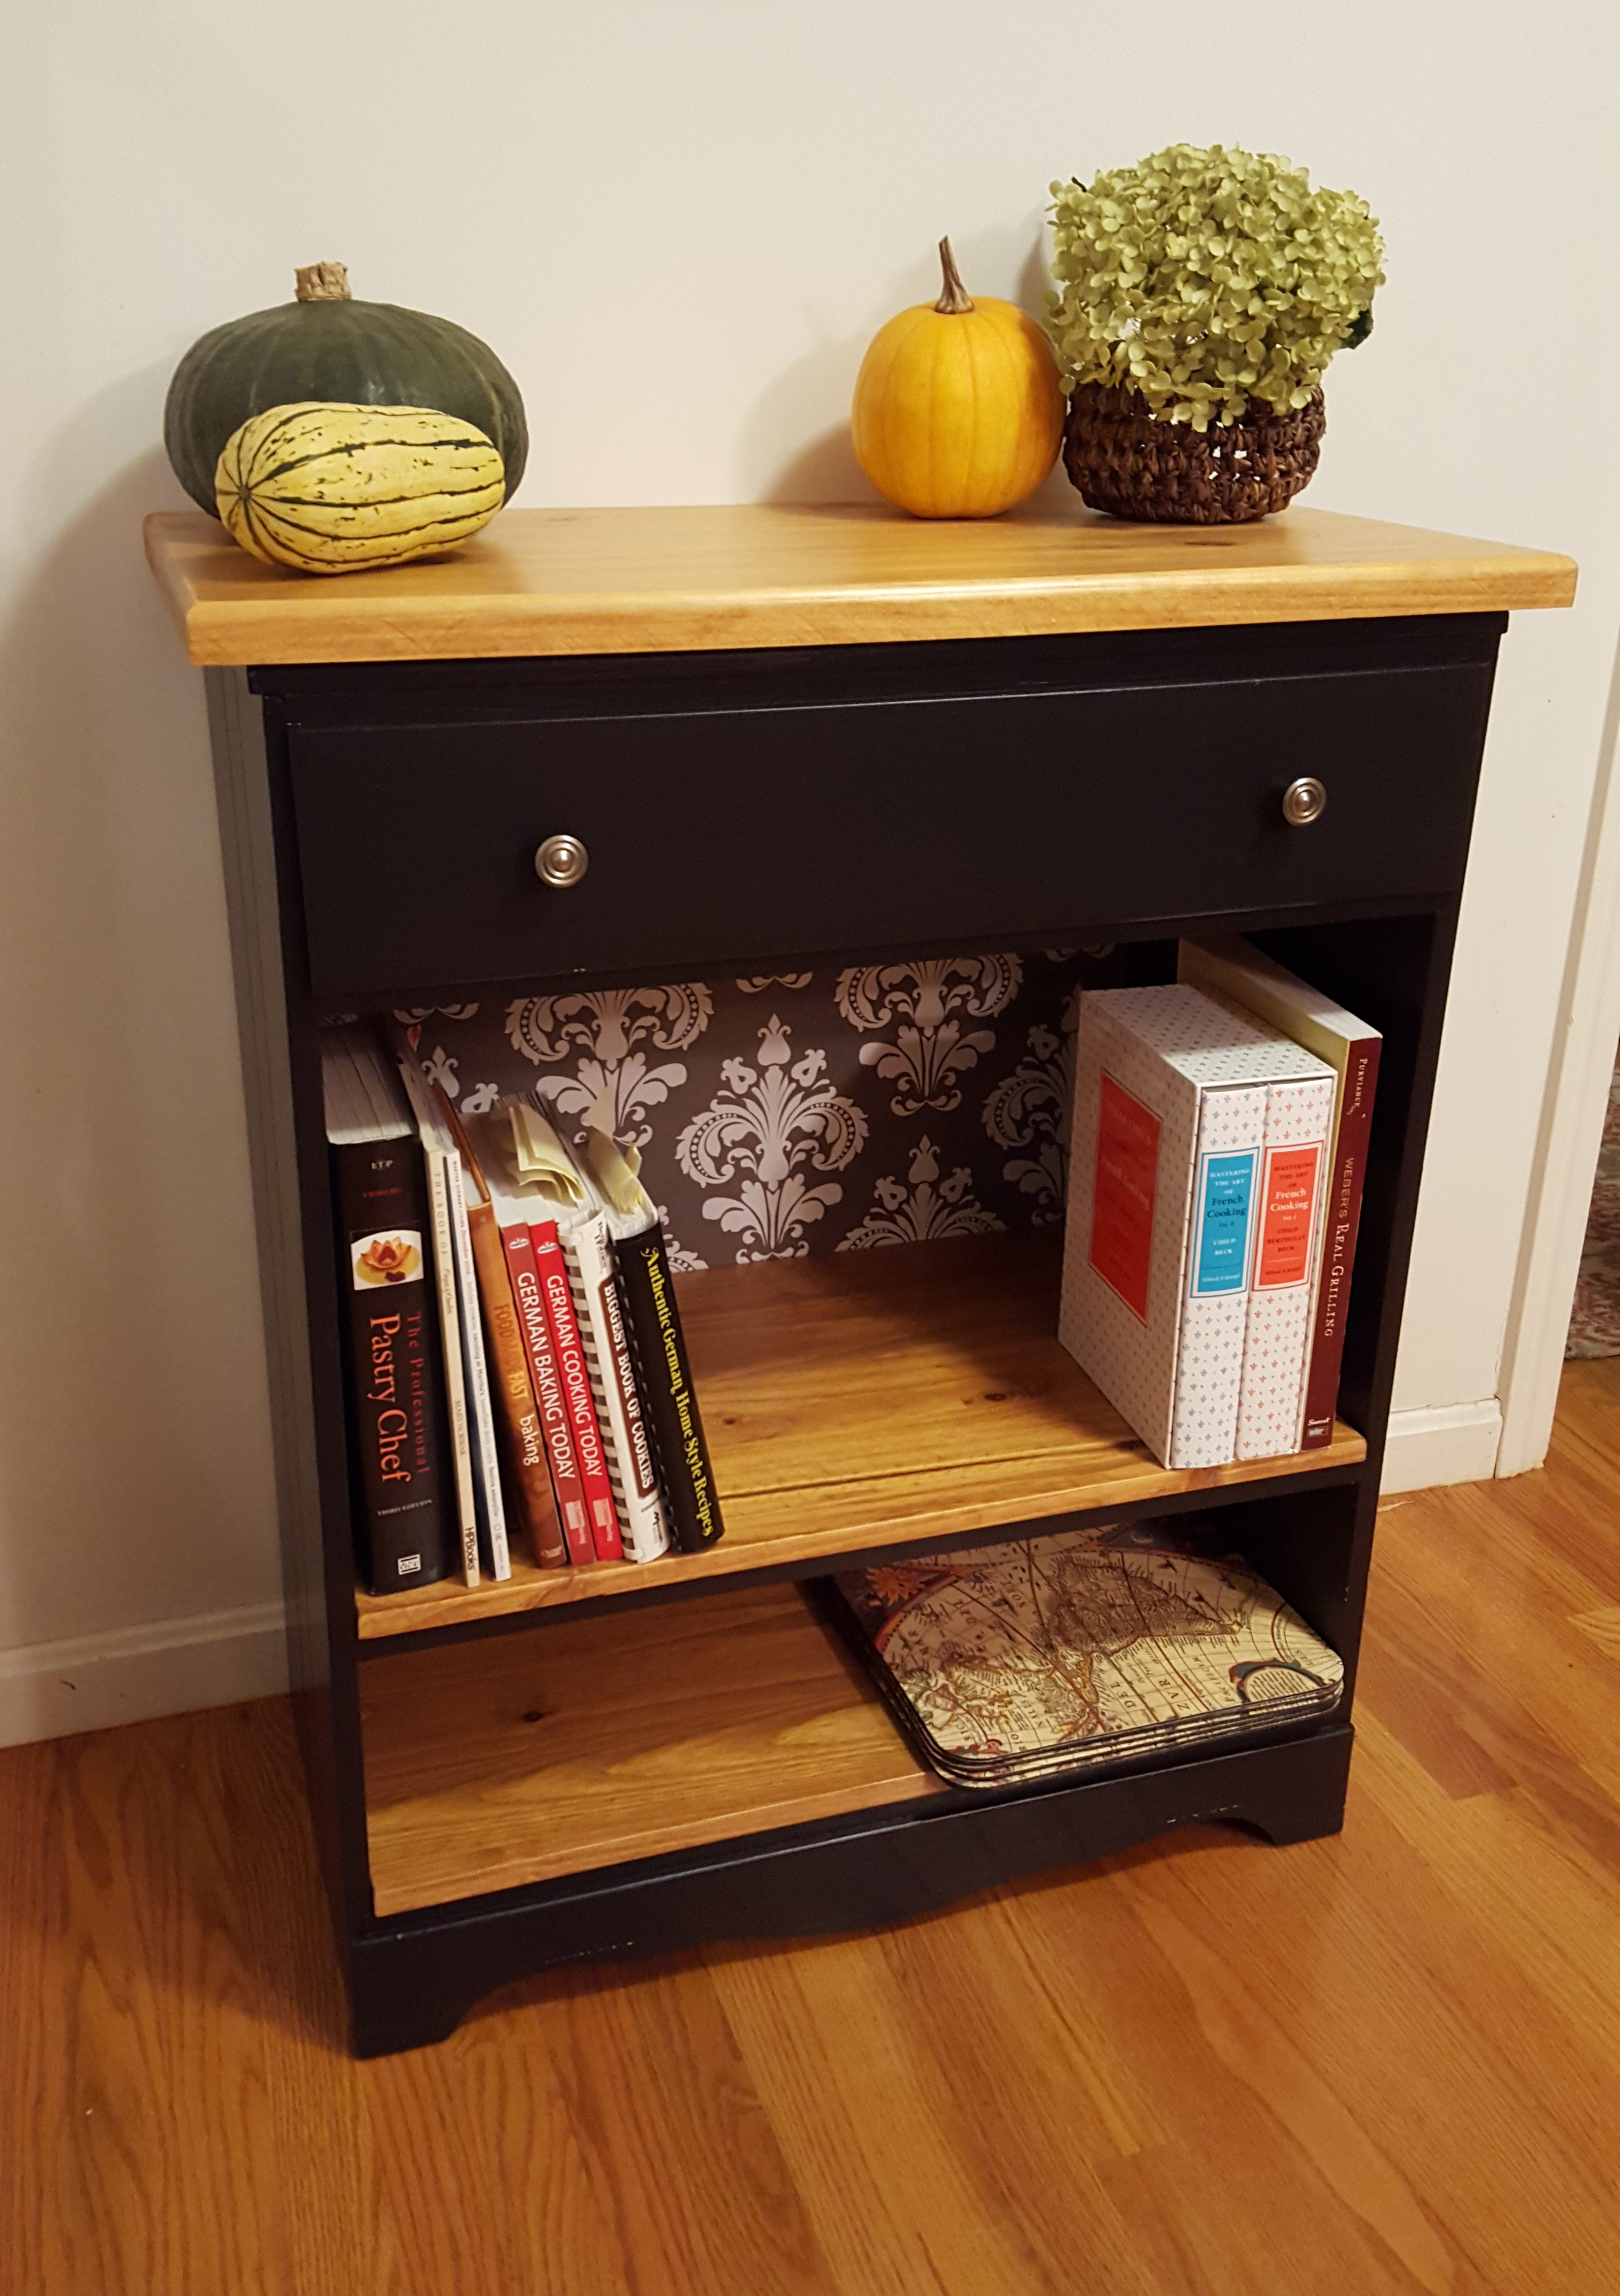 Very Homemade Kitchen Bookshelf | The Lady Beekeeper VG74